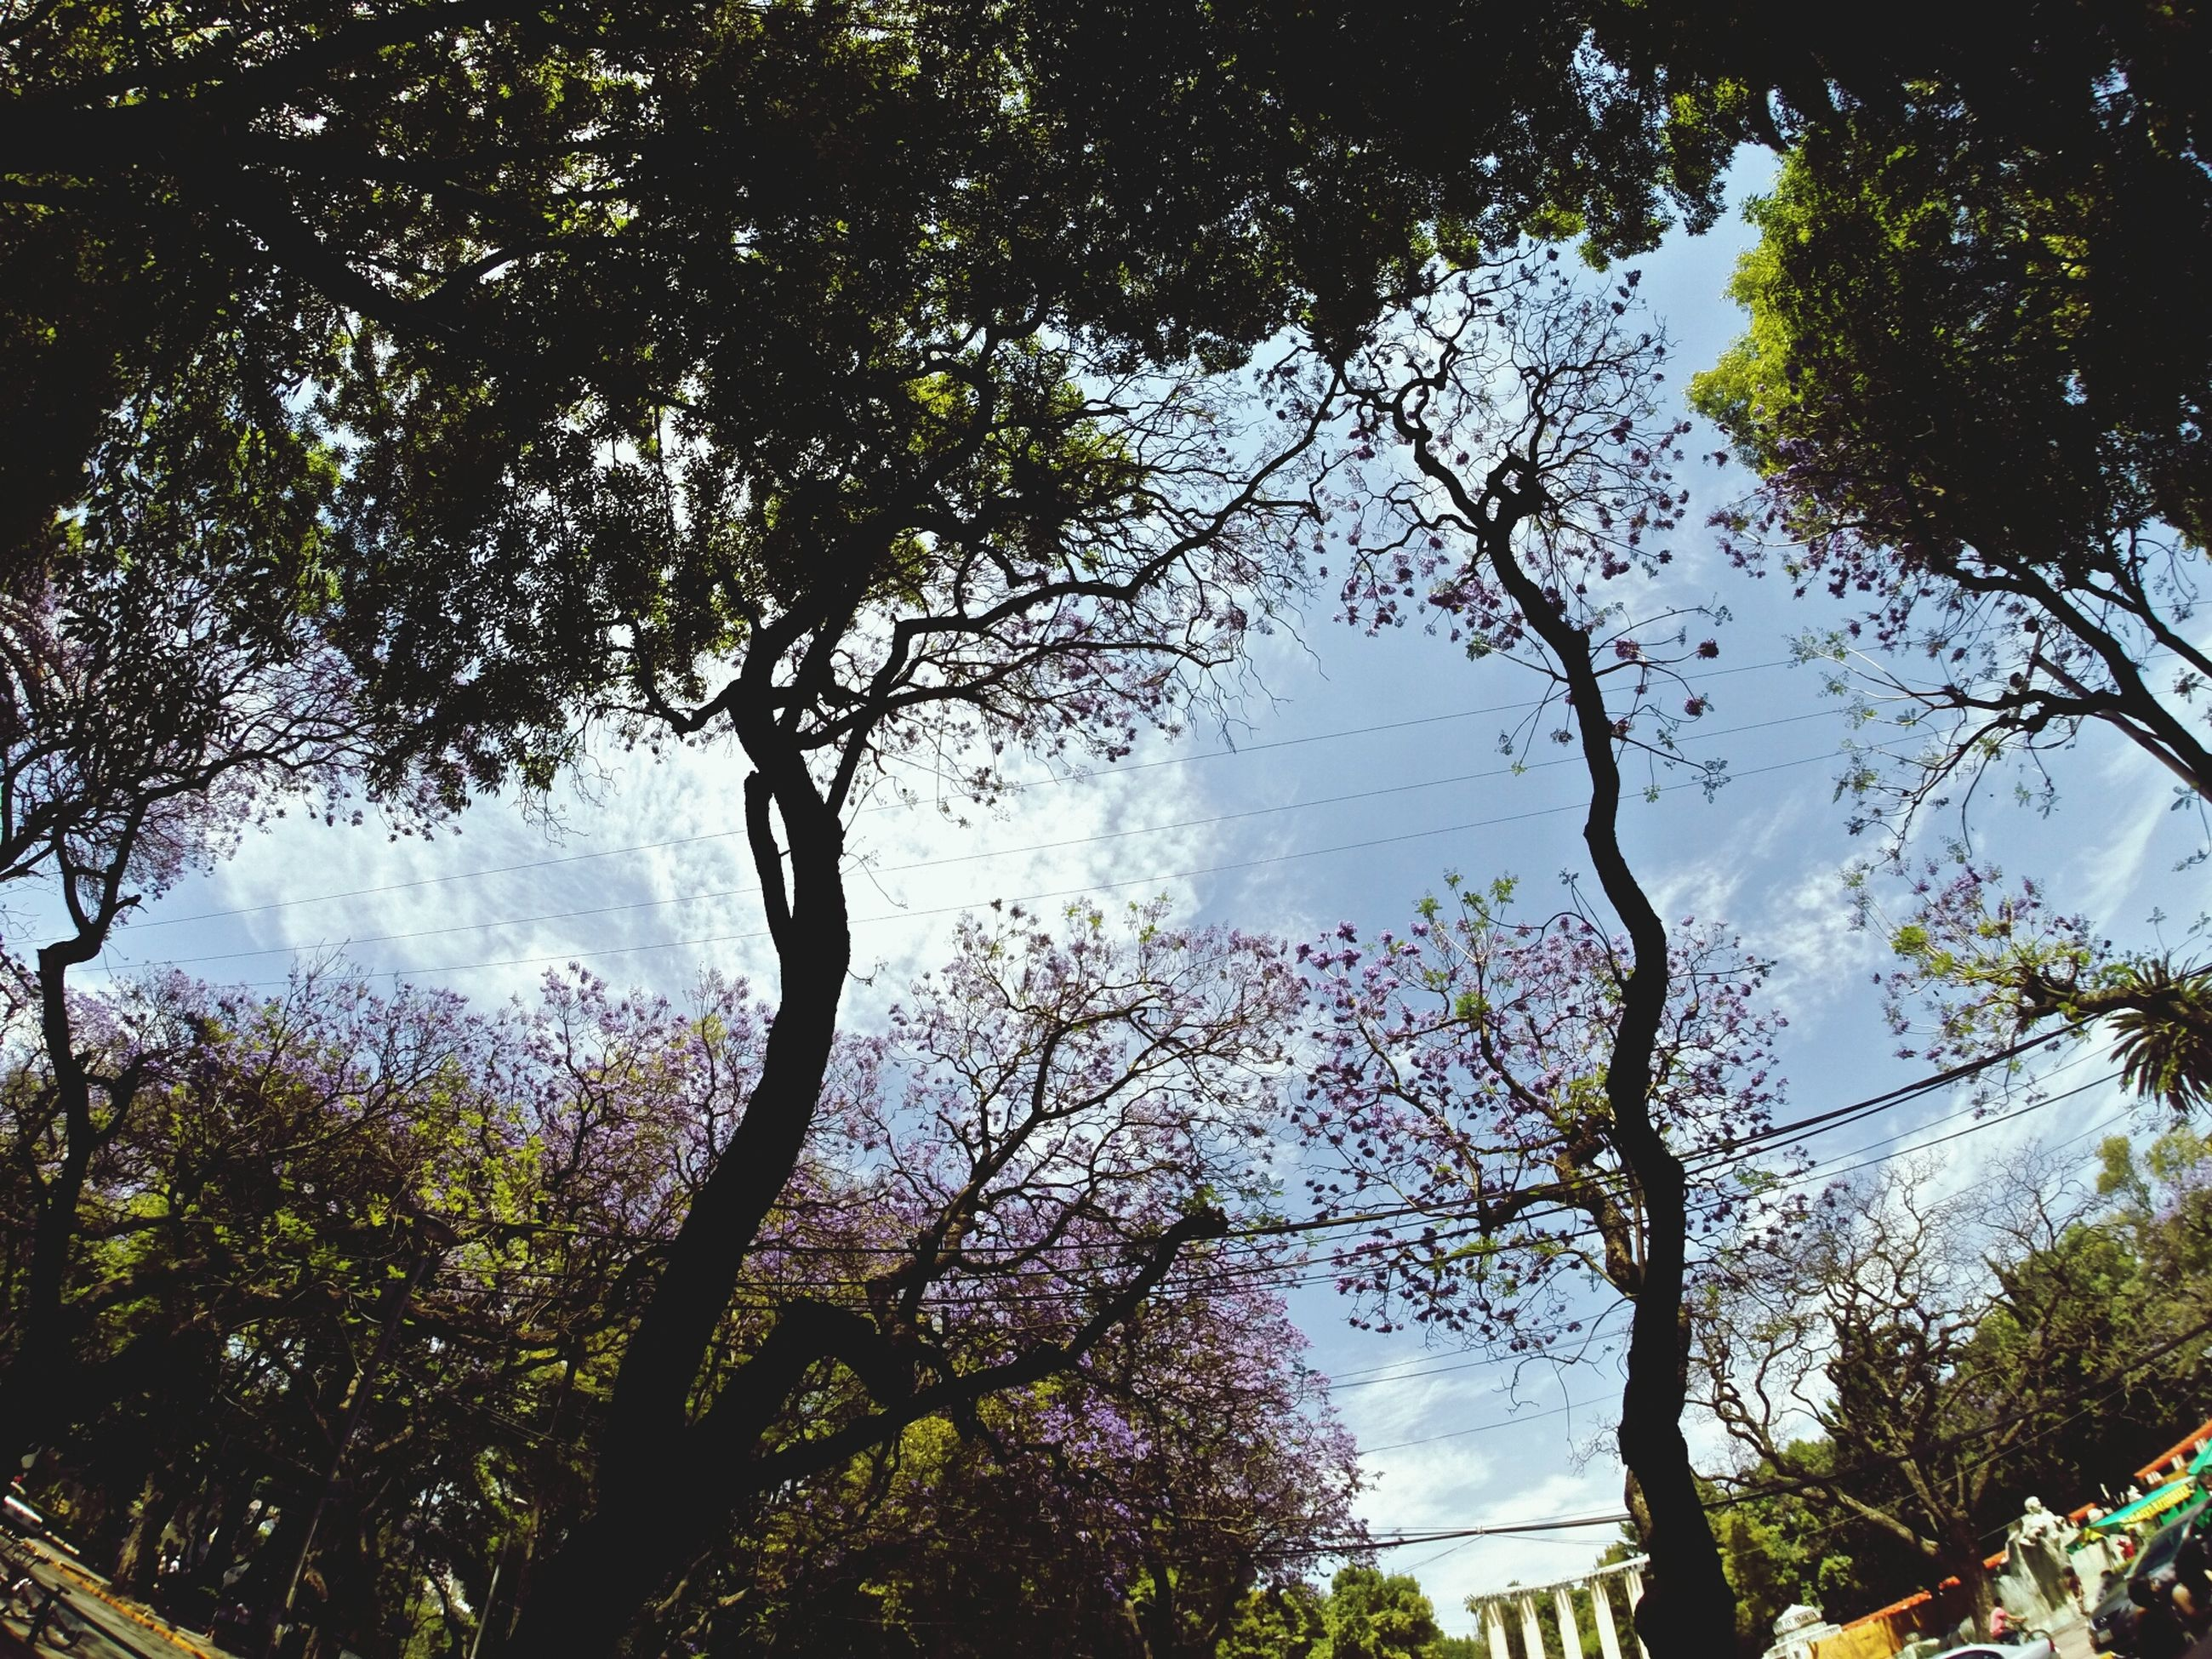 tree, branch, low angle view, growth, sky, building exterior, built structure, nature, architecture, tranquility, silhouette, tree trunk, beauty in nature, no people, scenics, outdoors, day, tranquil scene, treetop, green color